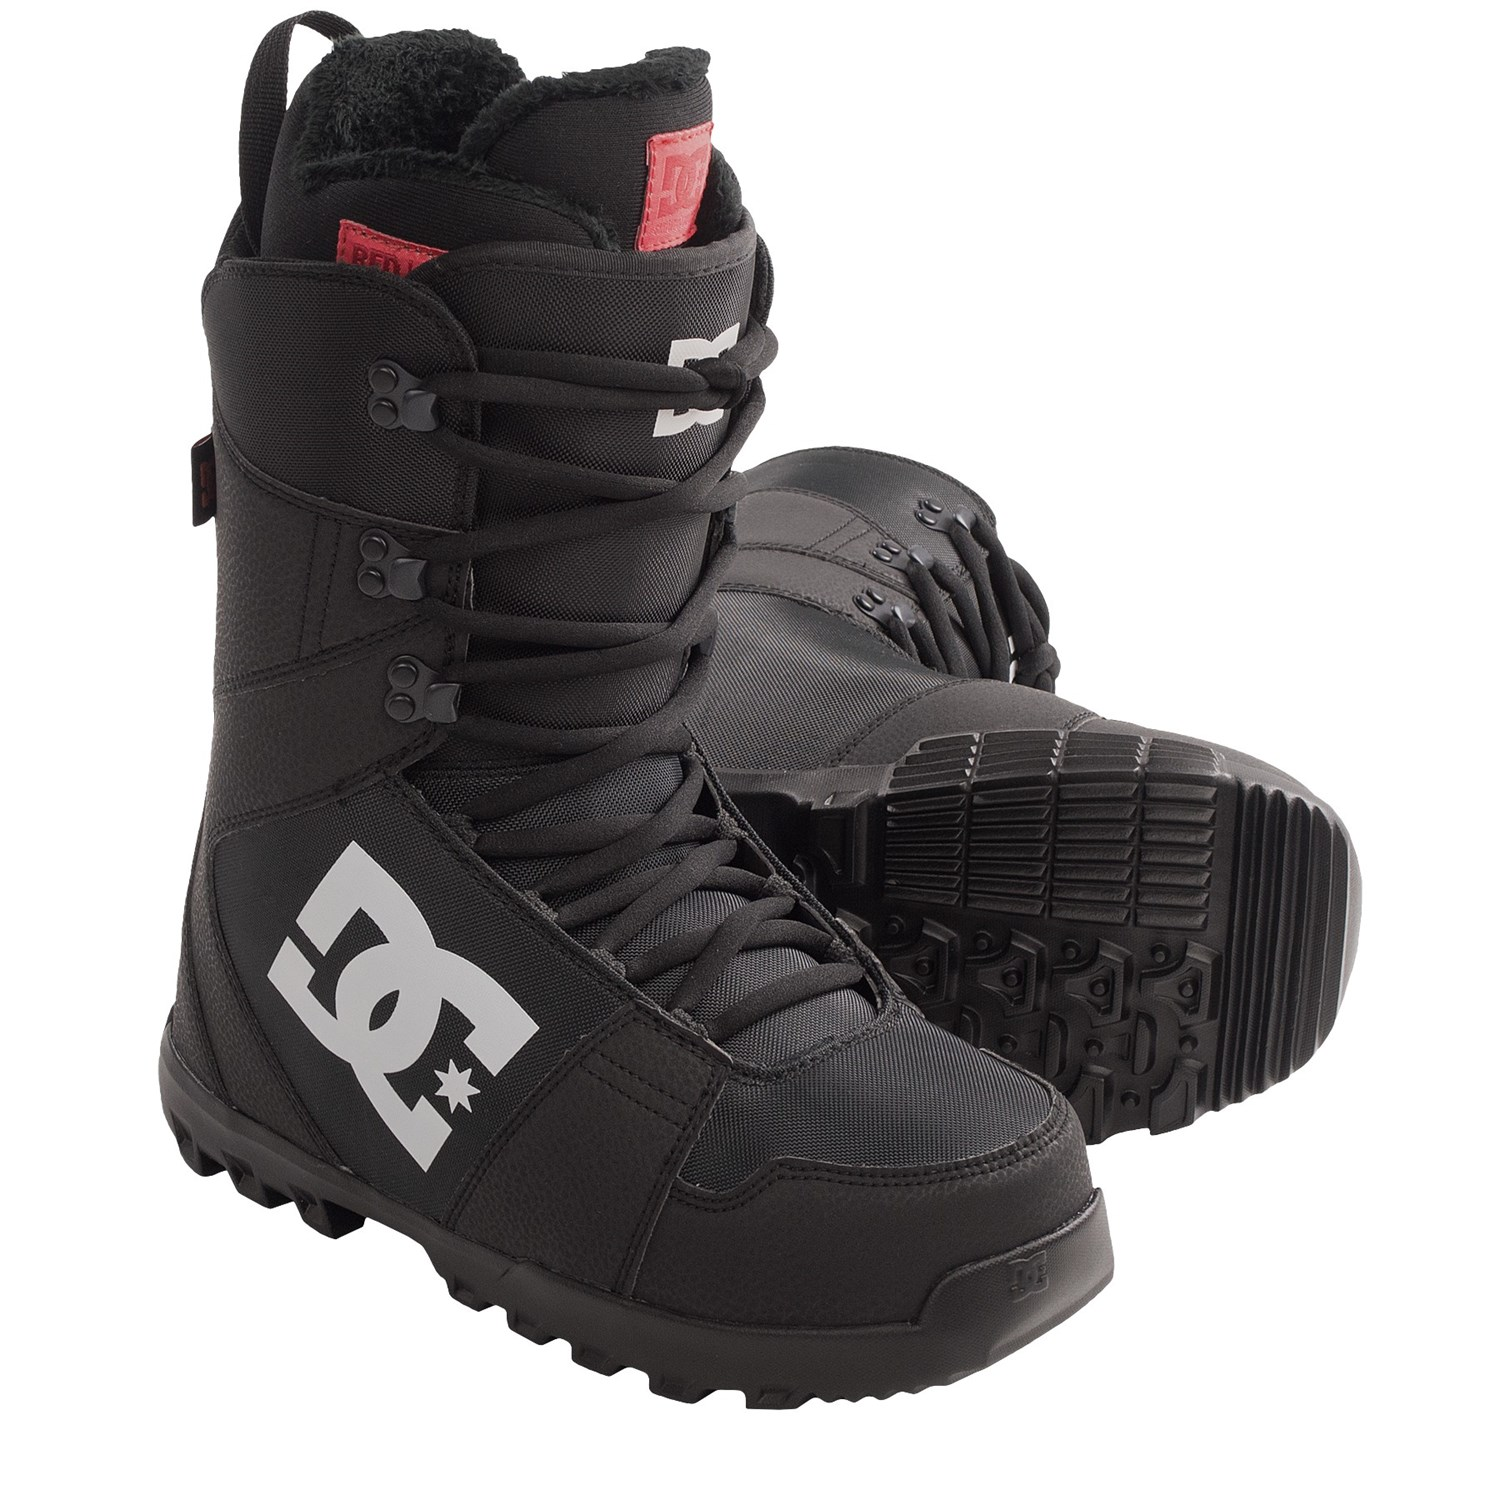 dc-shoes-phase-snowboard-boots-for-men-in-black-